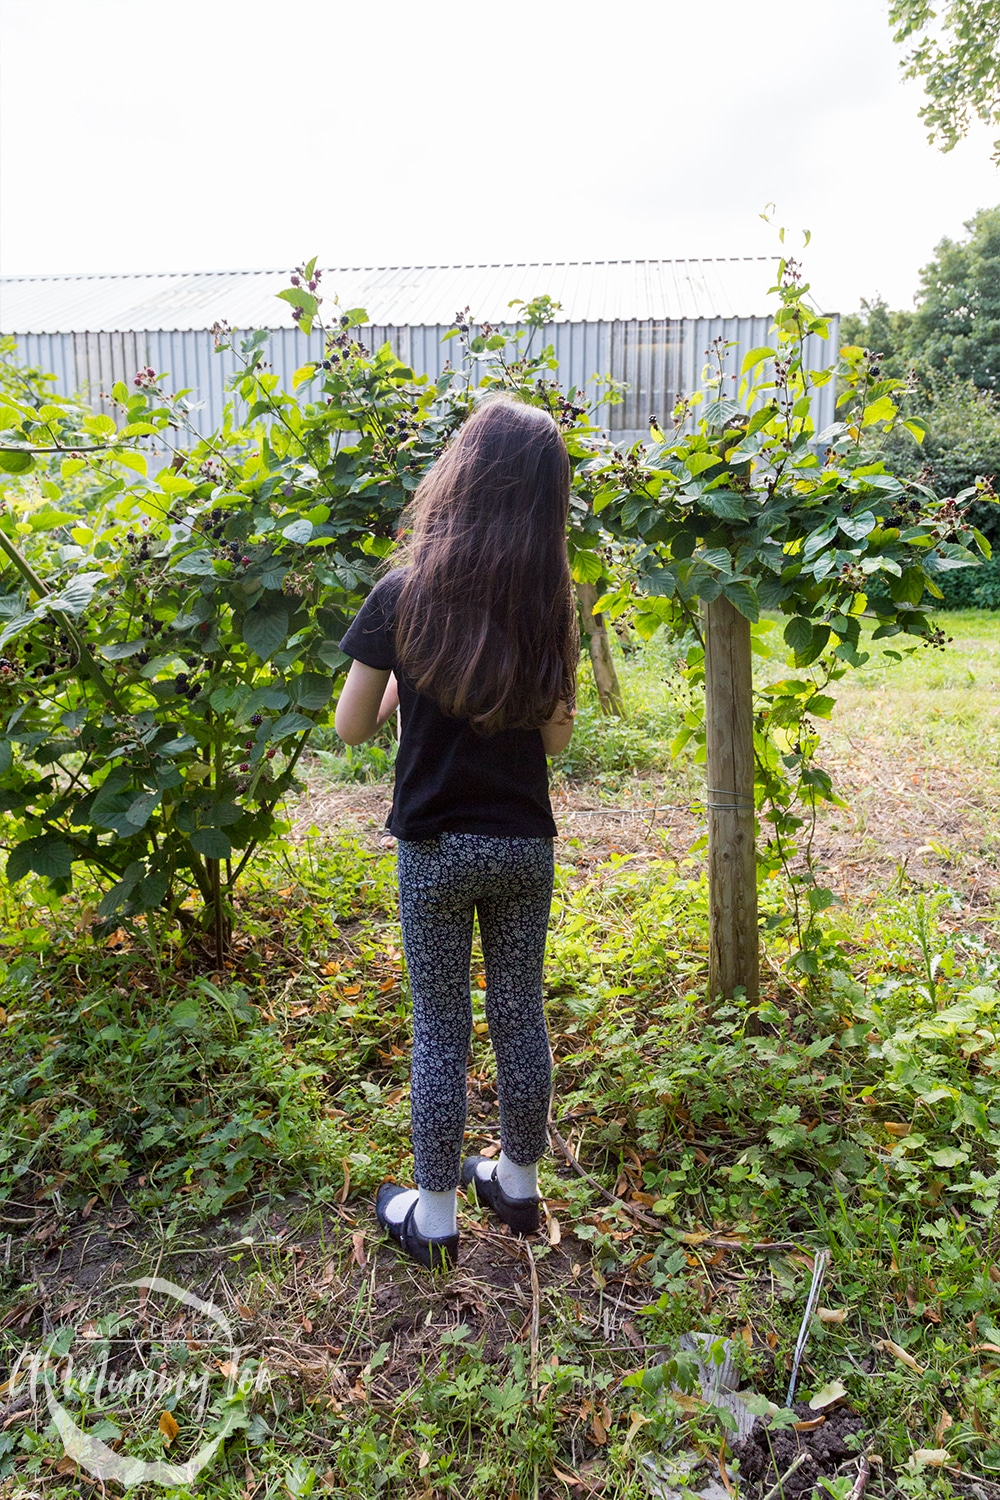 Going fruit picking as a family at a 'pick your own' farm with Robinsons